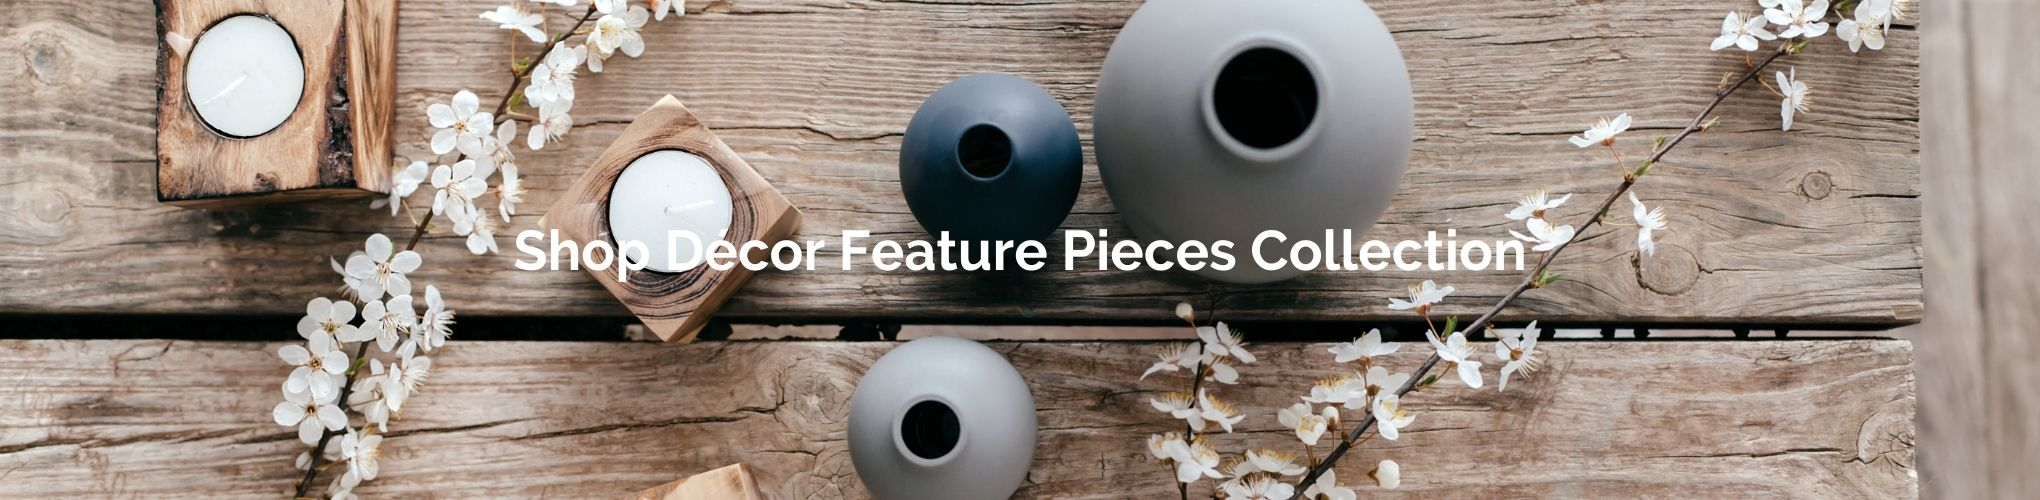 Decor Feature Pieces Collection from Estilo Living - Buy  Decor Feature Pieces for small spaces and homes Online Now!